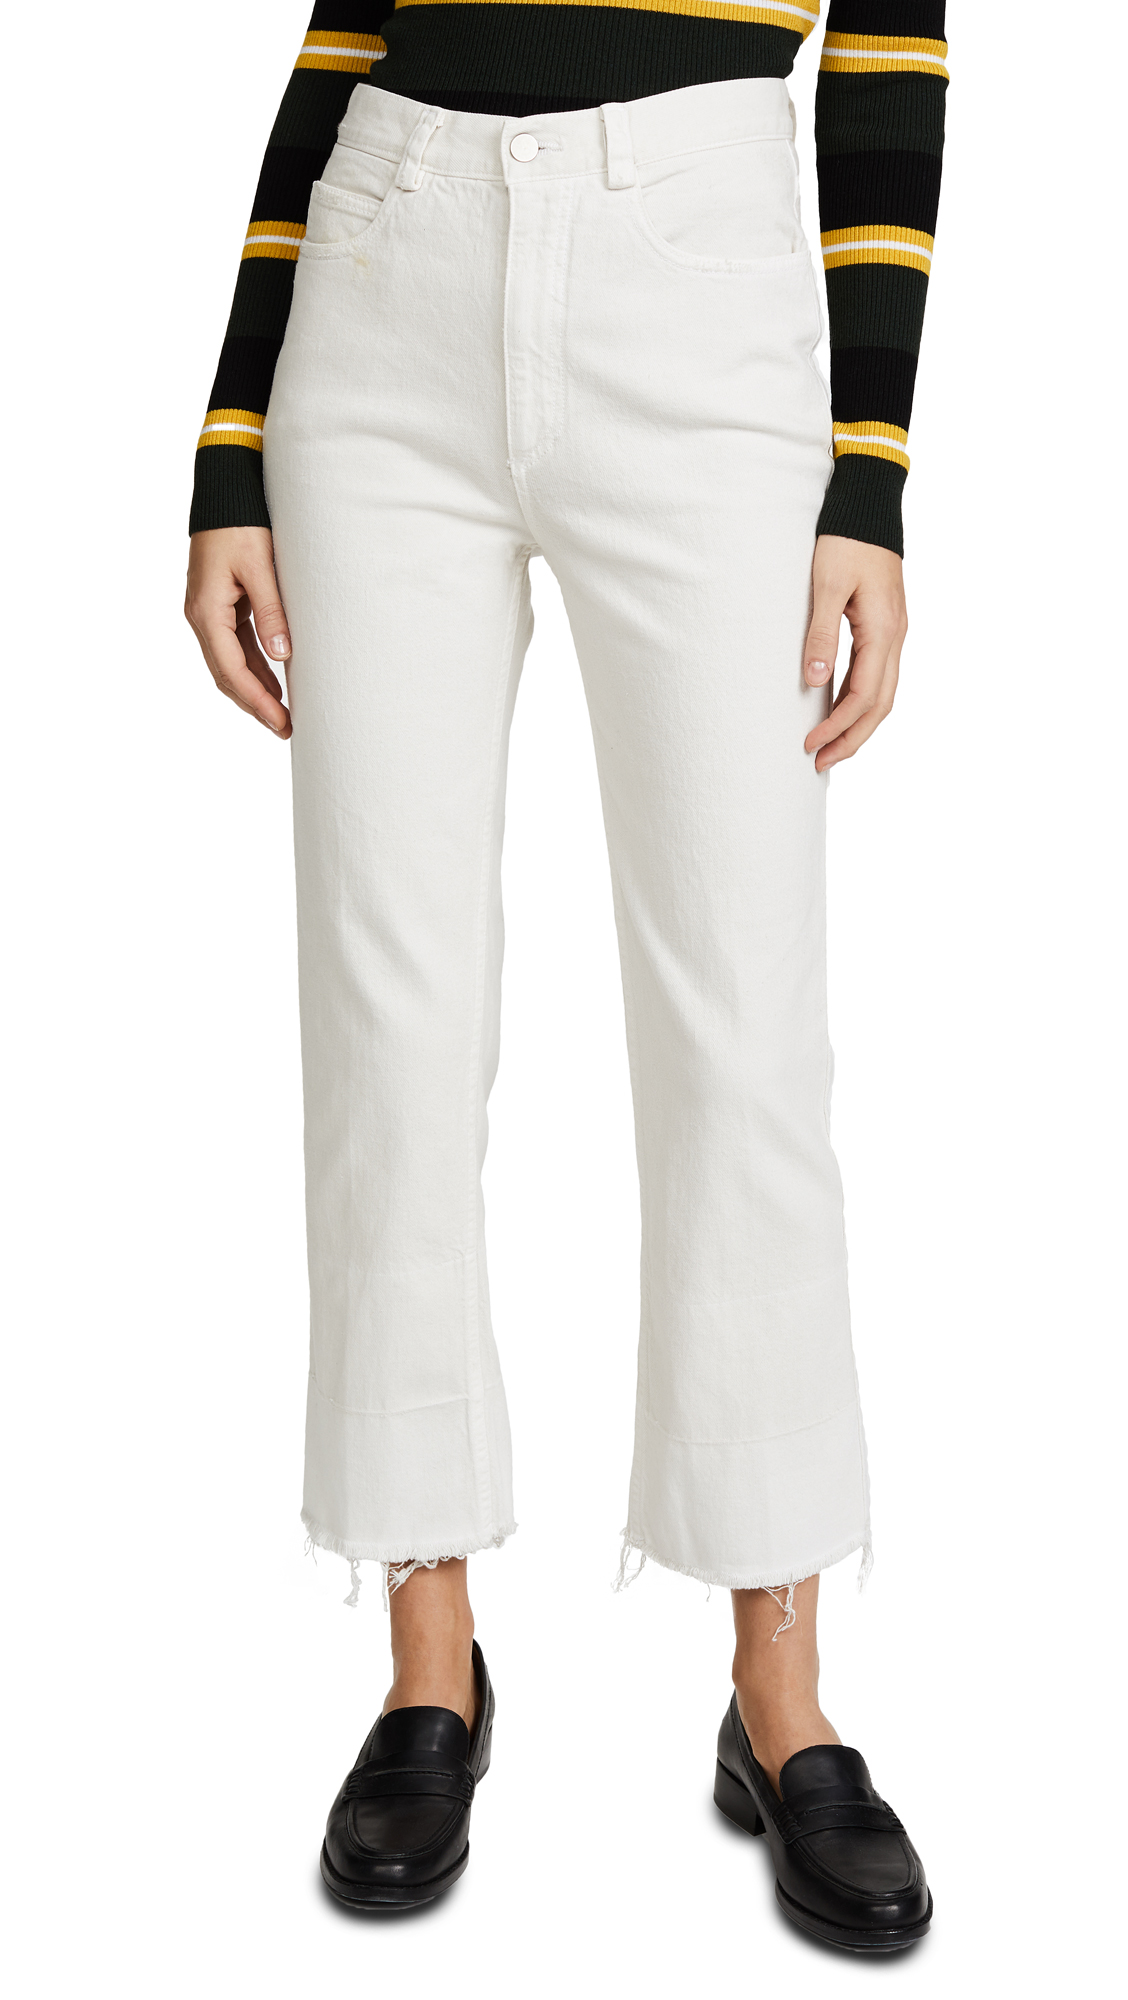 Rachel Comey Slim Legion Jeans - Dirty White